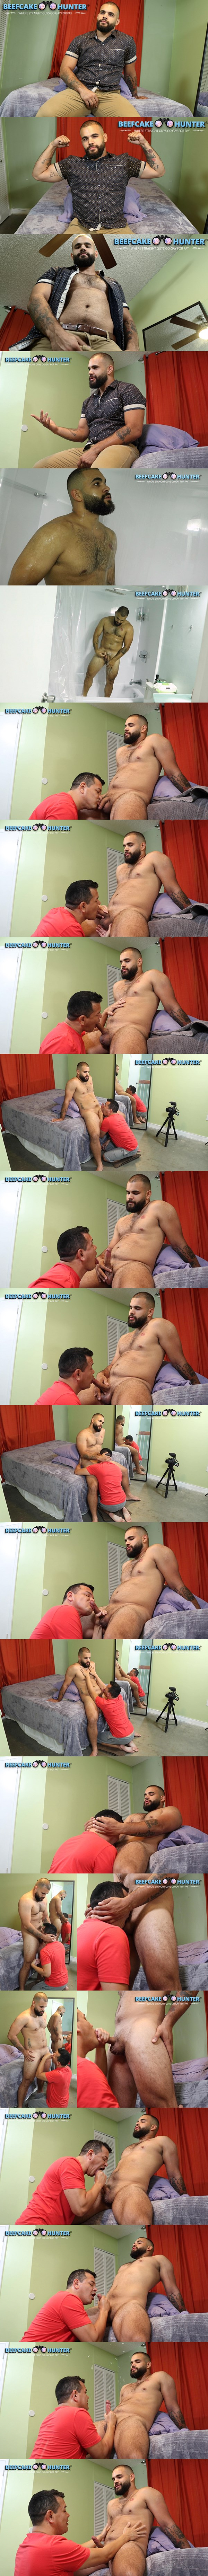 Victor deep-throats straight muscle hunk Gabriel's cock before he strokes a big juicy load out of Gabriel's hard cock in Face Fucked By Beefcake Gabriel at Beefcakehunter 01